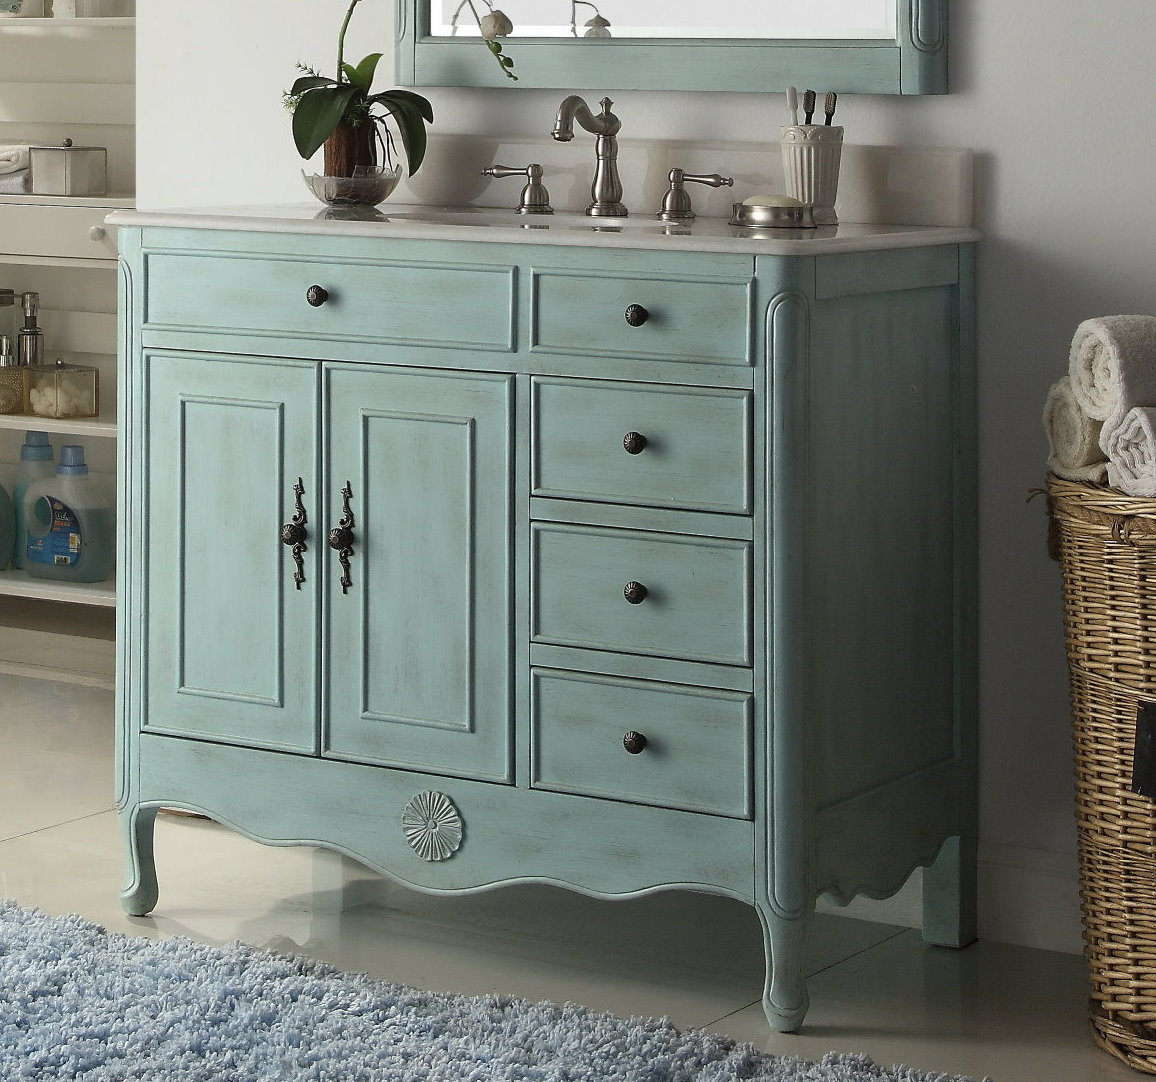 Nautical Style Bathroom Vanities: 38 Inch Bathroom Vanity With 3 Drawers On The Right